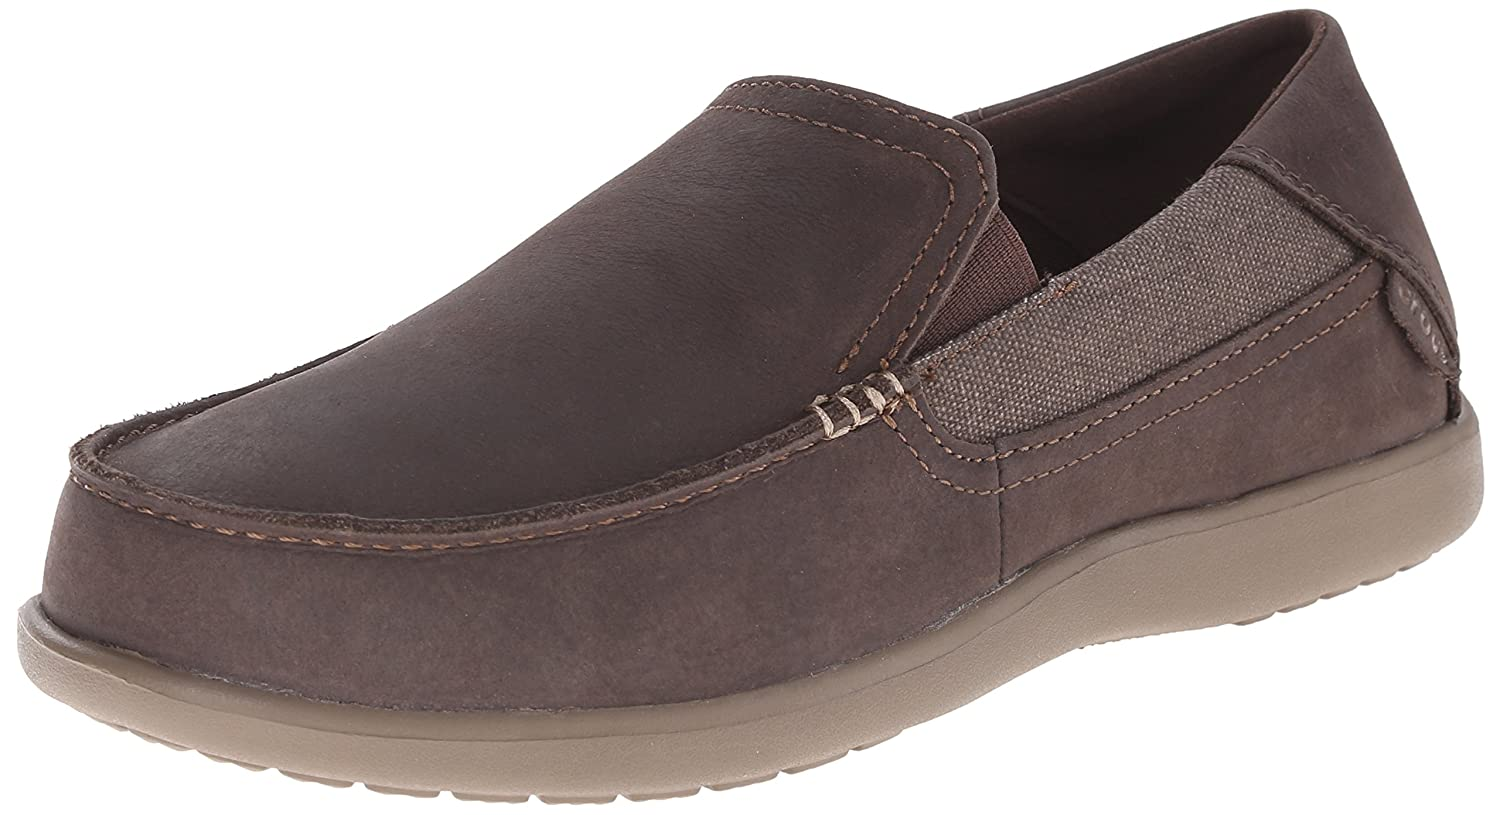 Crocs Santa Cruz 2 Luxe Leather Men, Náuticos para Hombre 41/42 EU|Marrón (Espresso/Walnut)